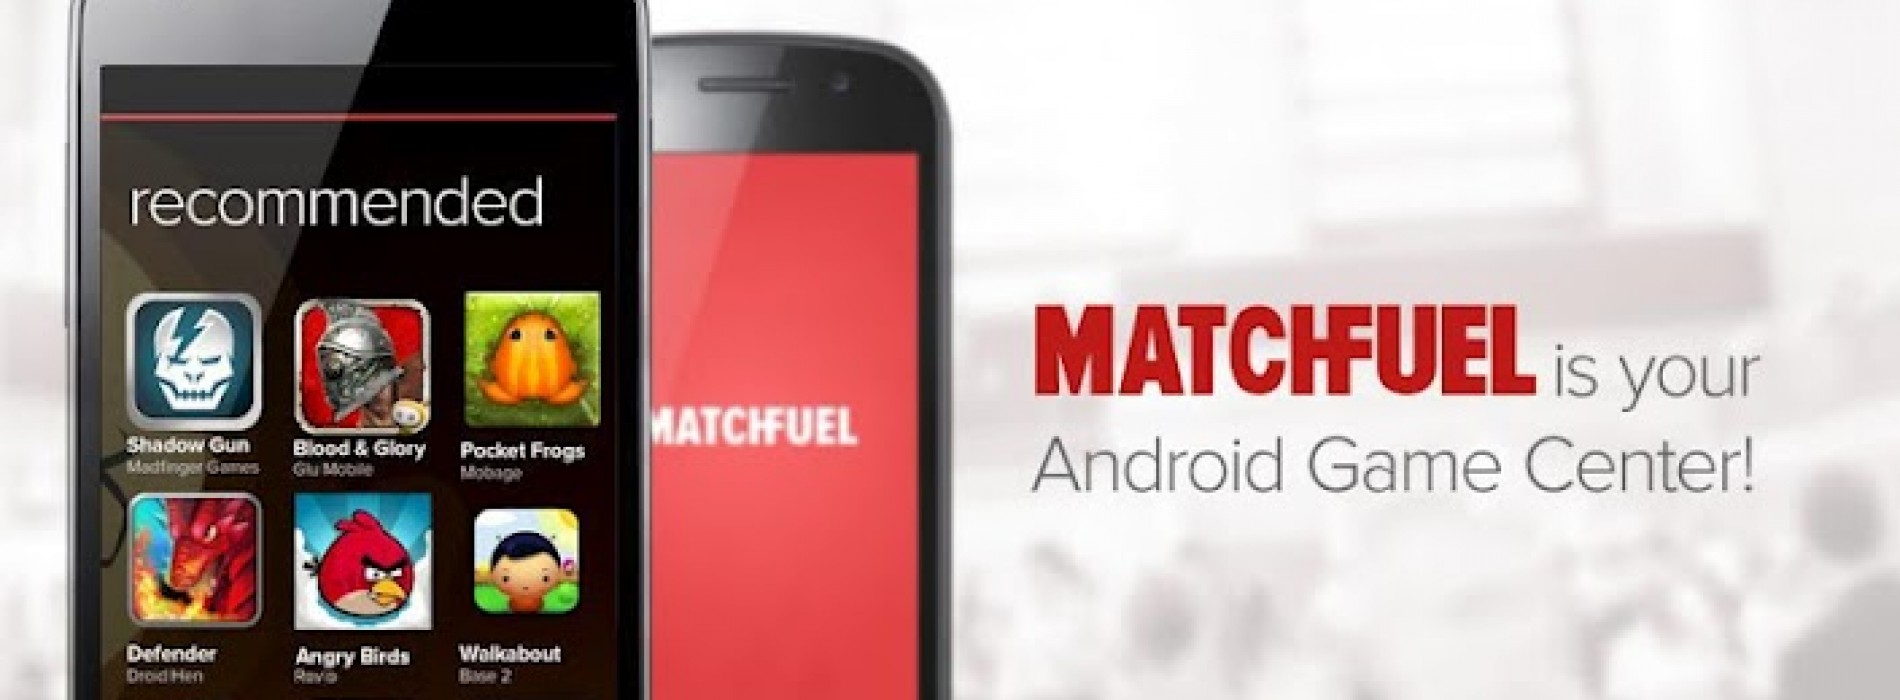 MatchFuel recommends the best games for Android users